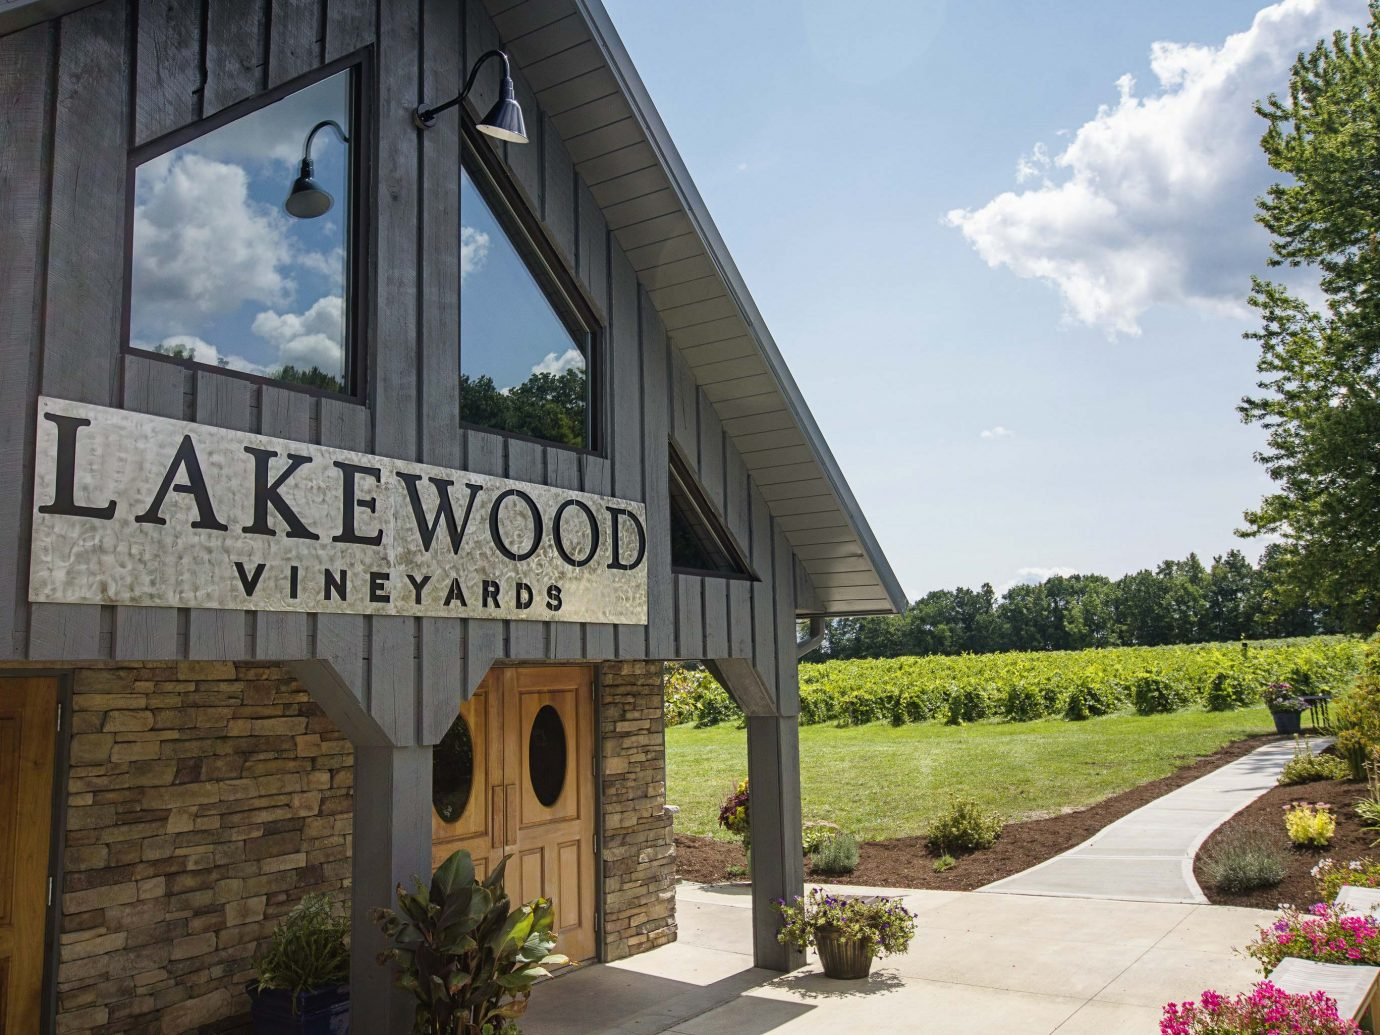 Lakewood Vineyard